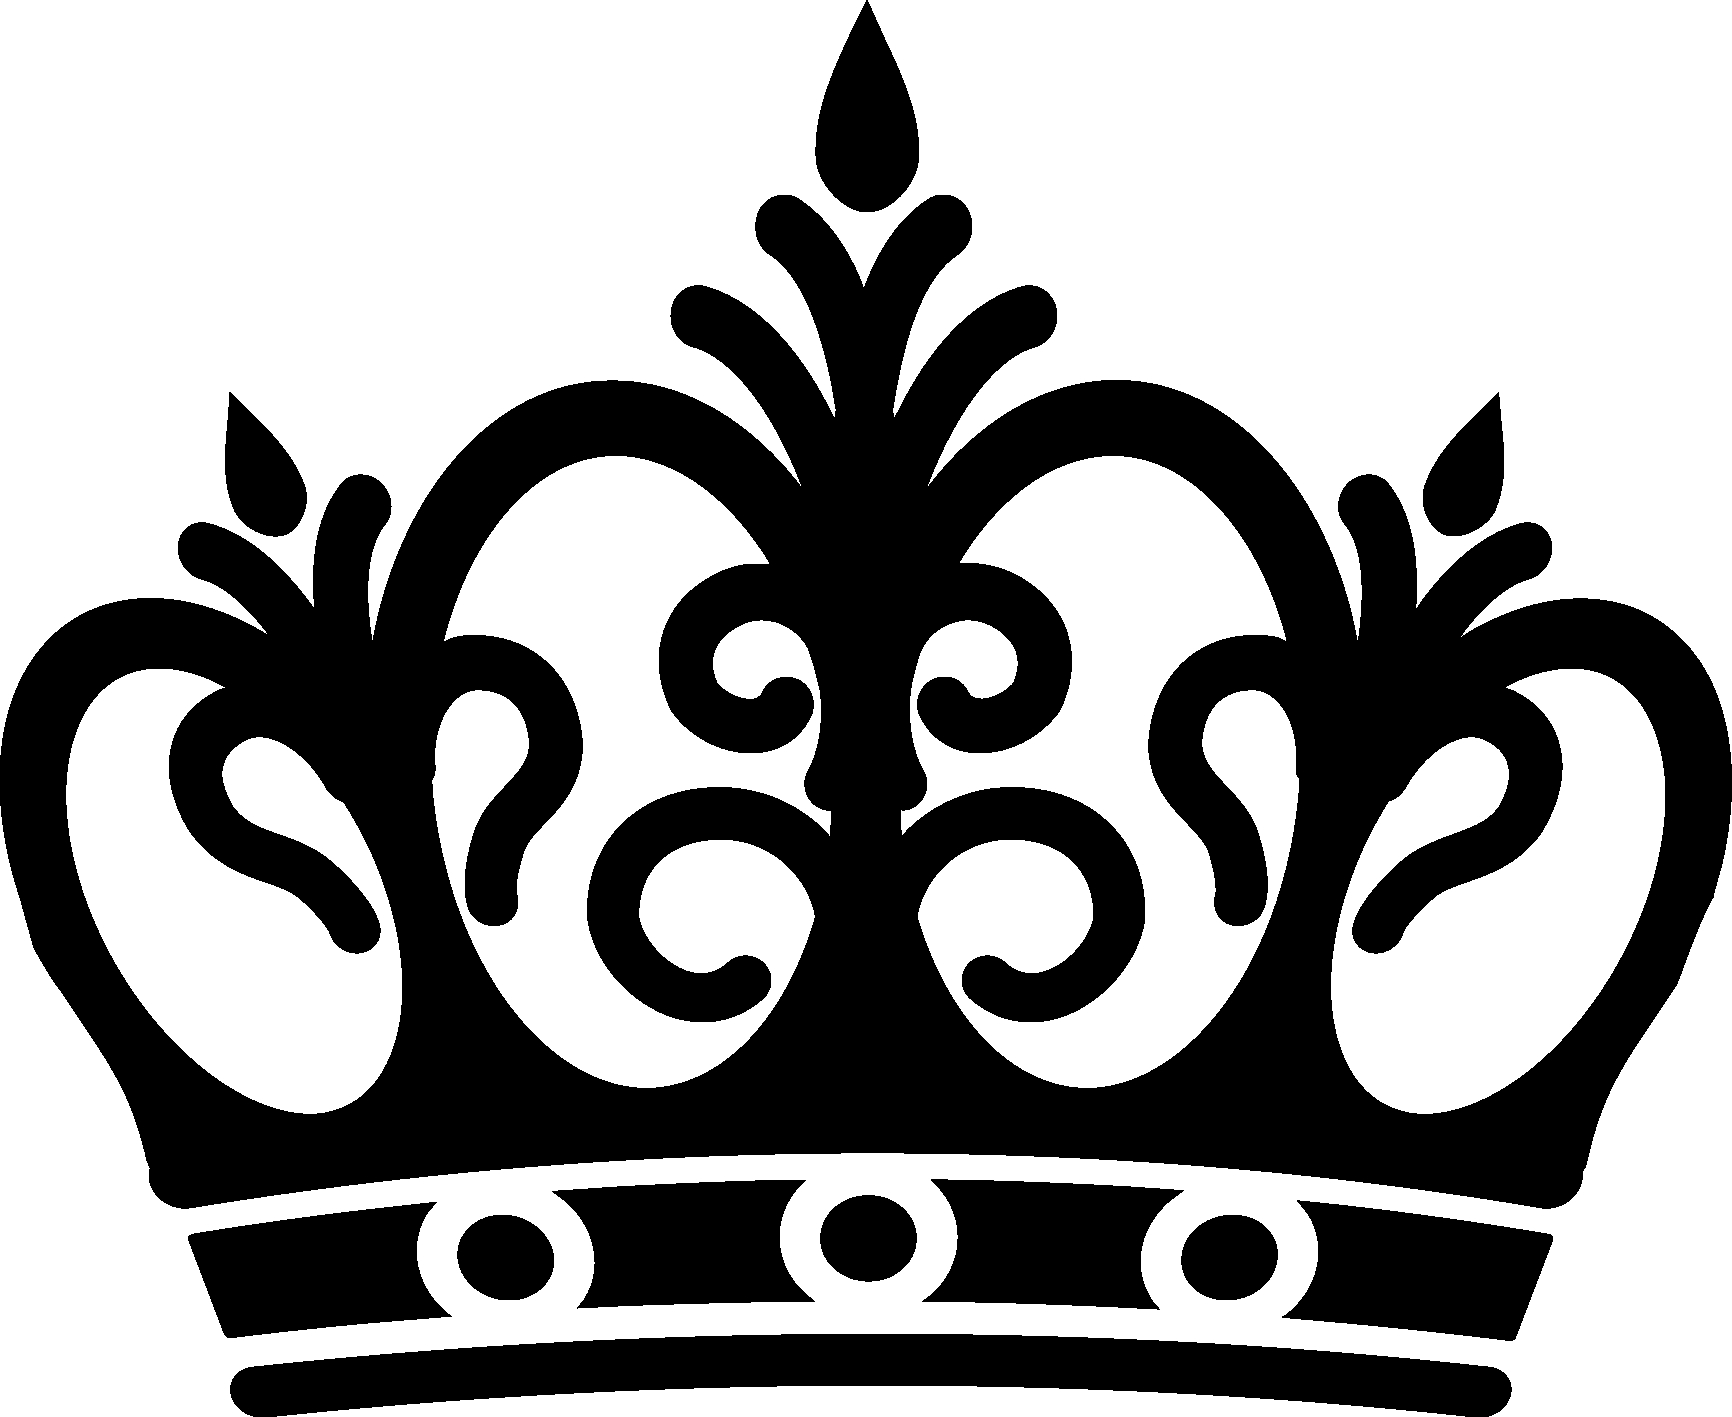 Crown clipart. New black gallery digital